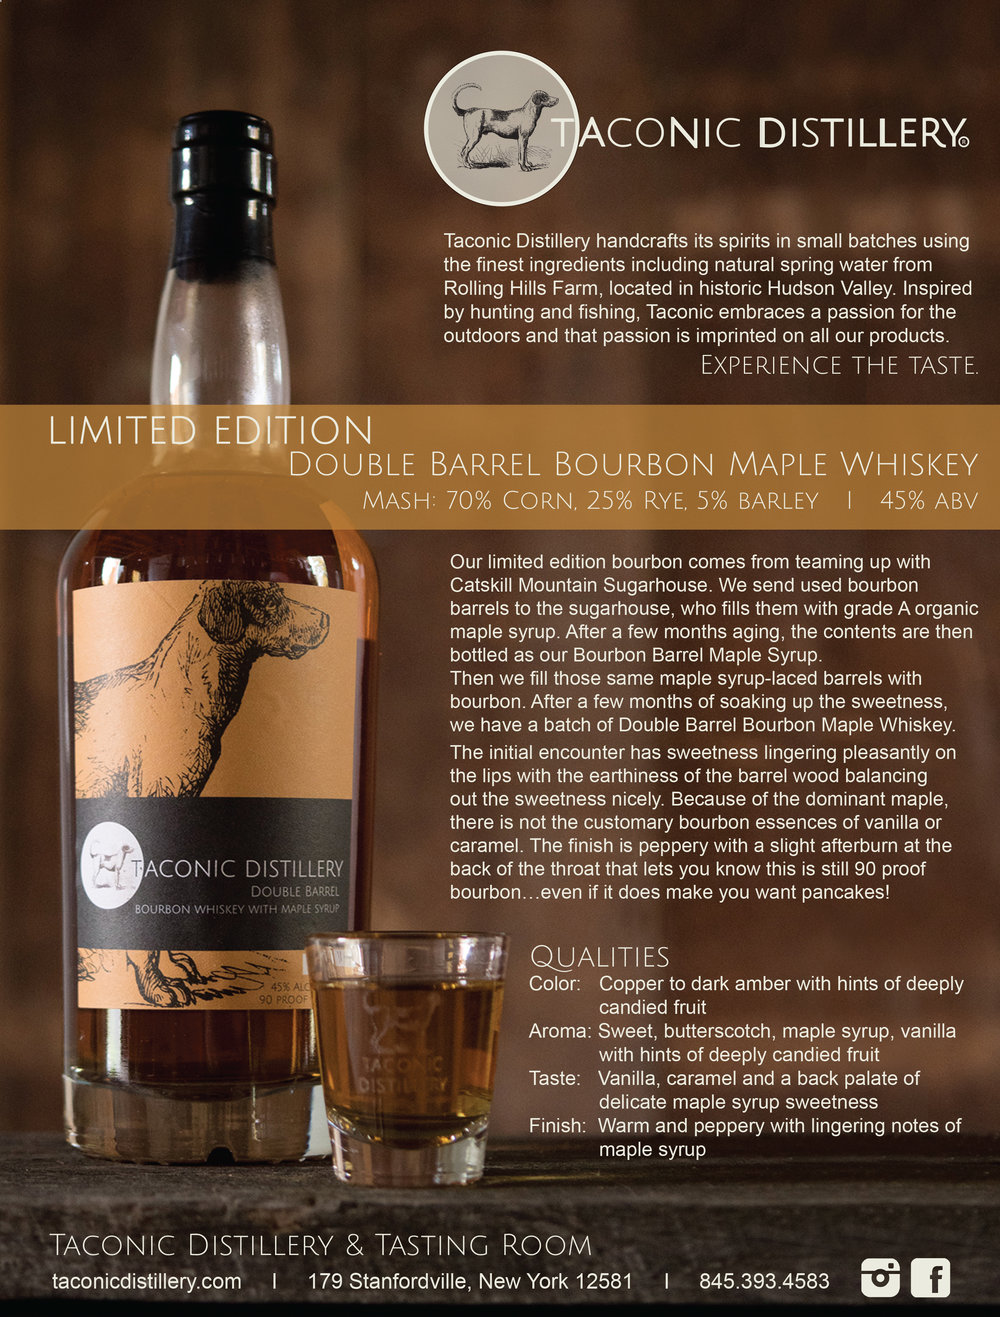 Double Barrel Bourbon Maple Whiskey